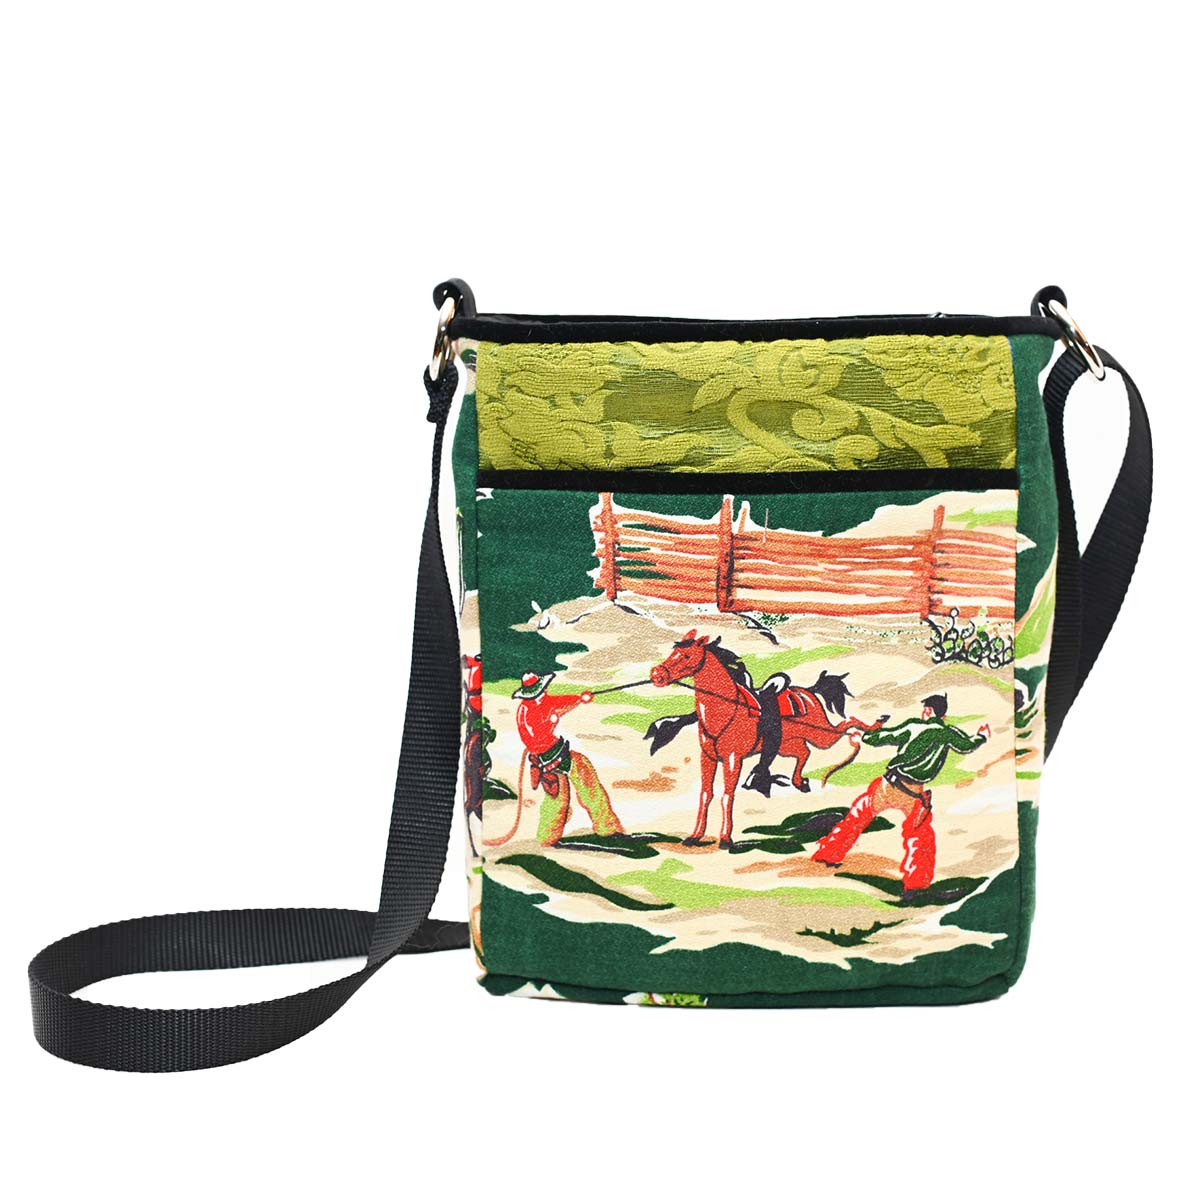 crossbody bag western motif on green